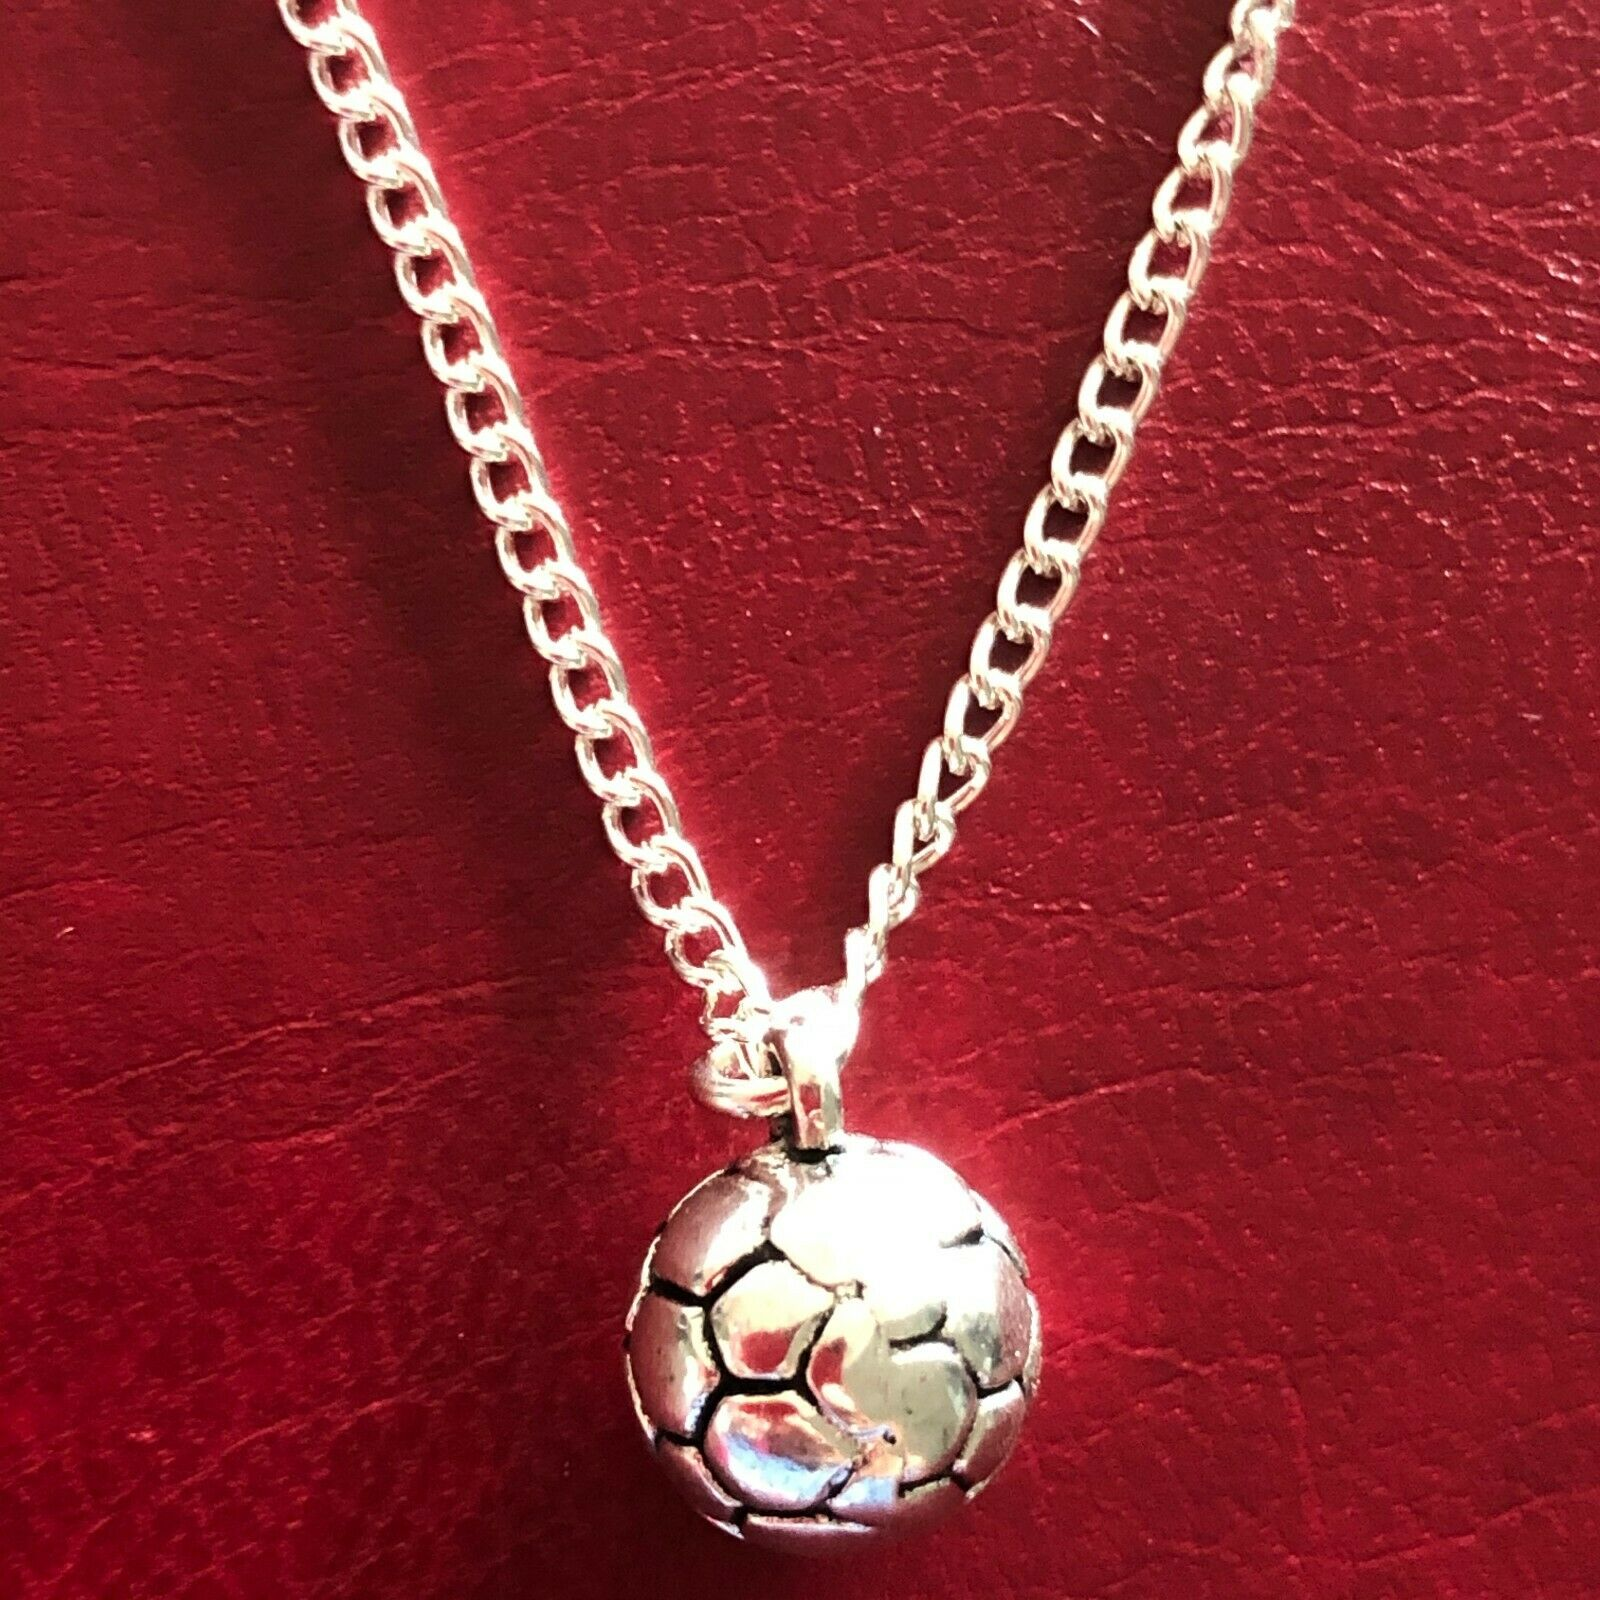 Jewellery - FOOTBALL CHARM NECKLACE PENDANT BOYS MENS JEWELLERY 16 18 20 silver plated chain